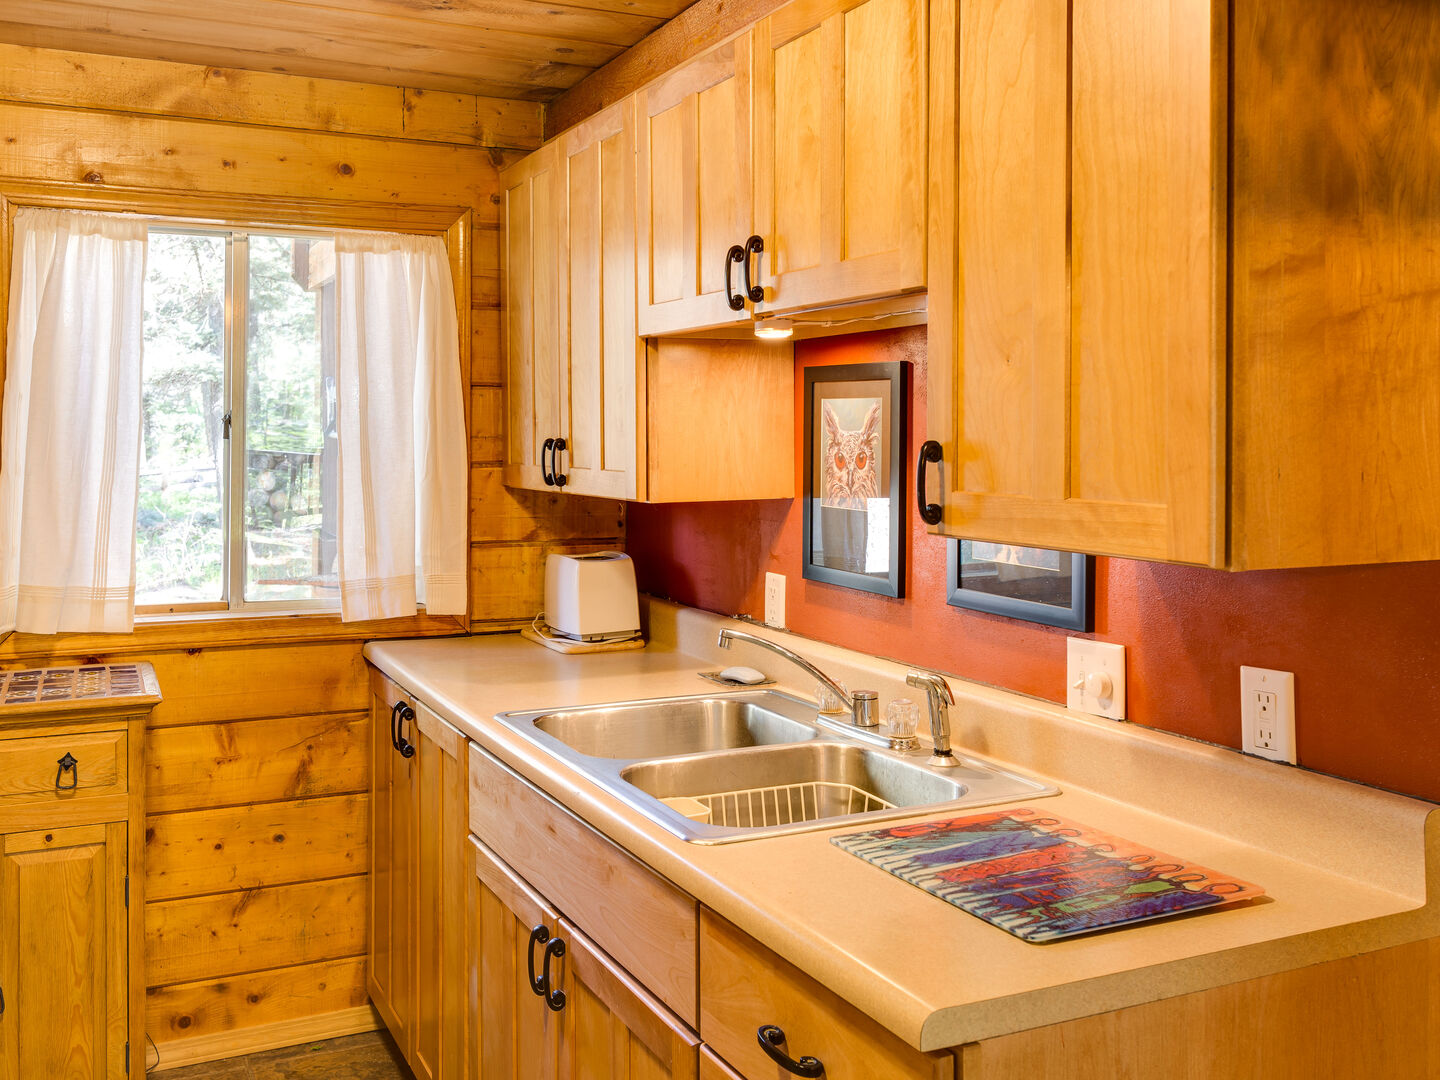 Kitchen stocked to make a great meal